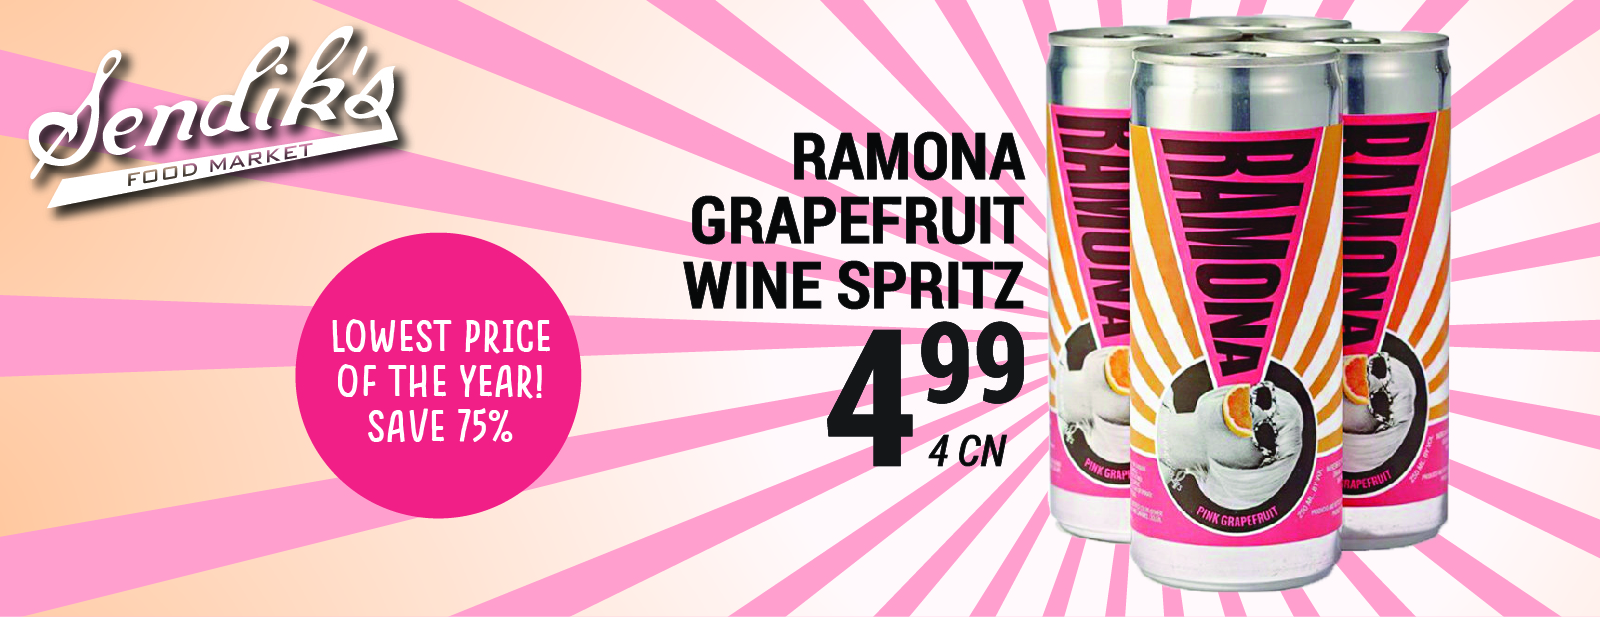 Ramona Grapefruit Wine Spritz $4.99 4 can